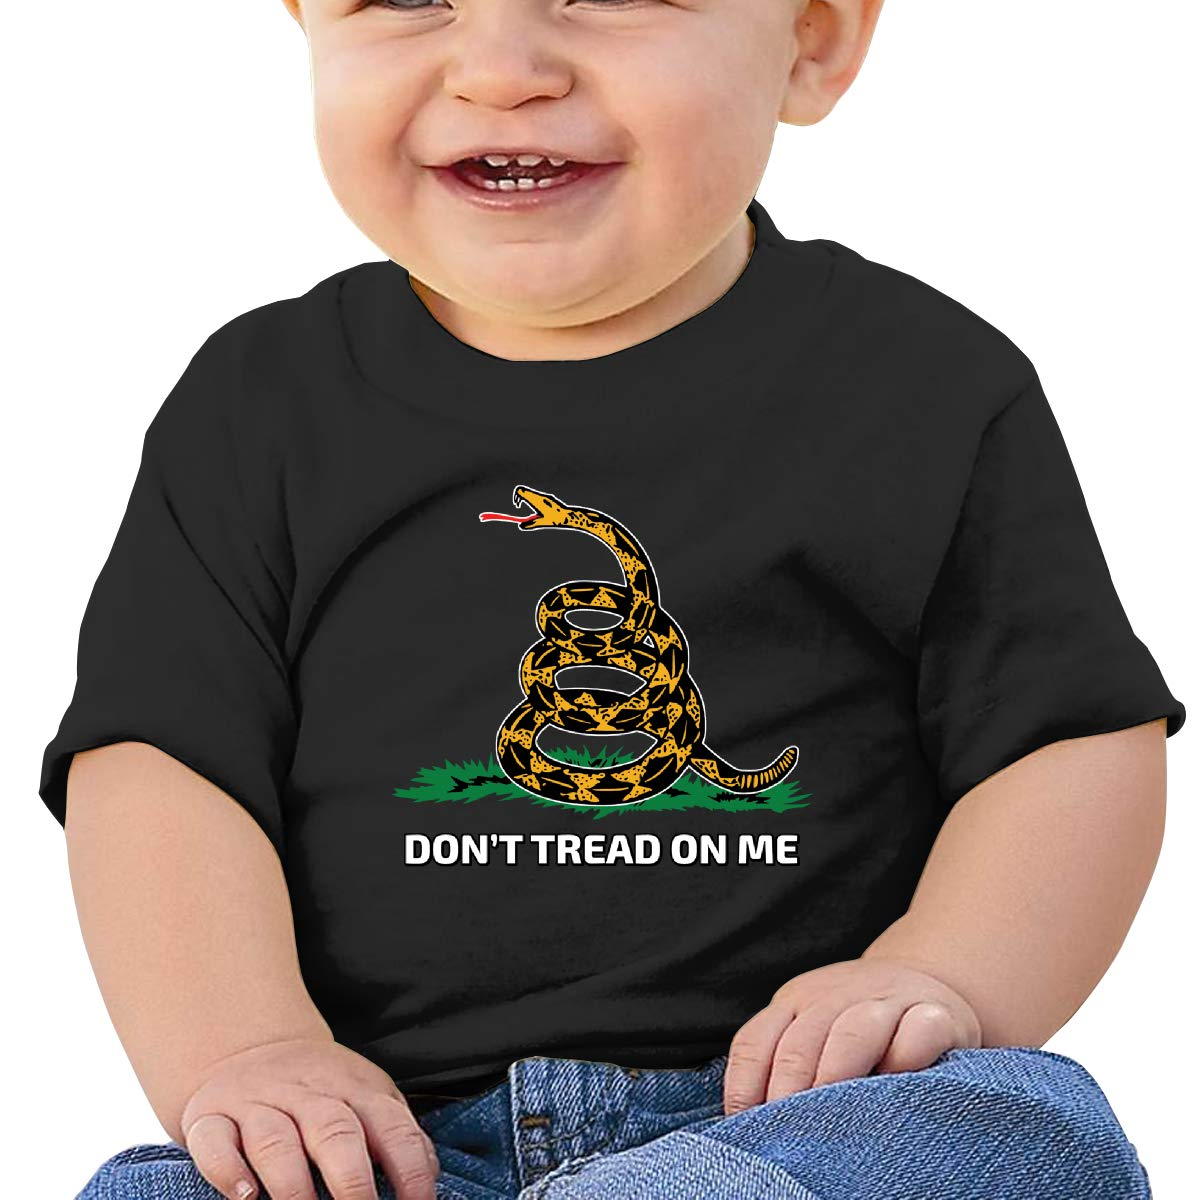 Dont Tread On Me Baby T-Shirt Baby Boy Girl Cotton T Shirts Fashion Outfits for 6M-2T Baby